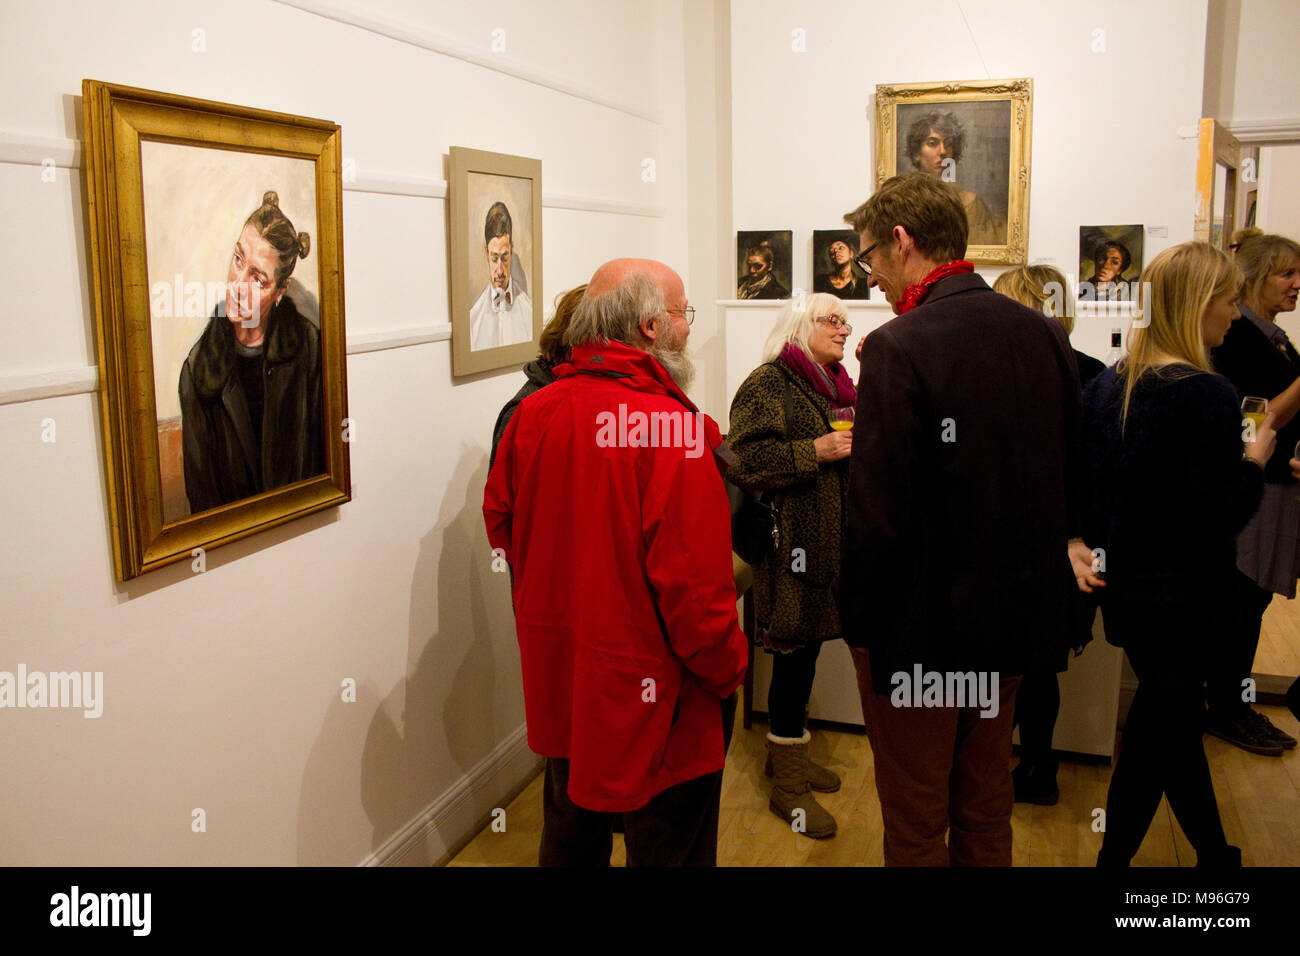 People socialise at a private view of portrait paintings - Stock Image